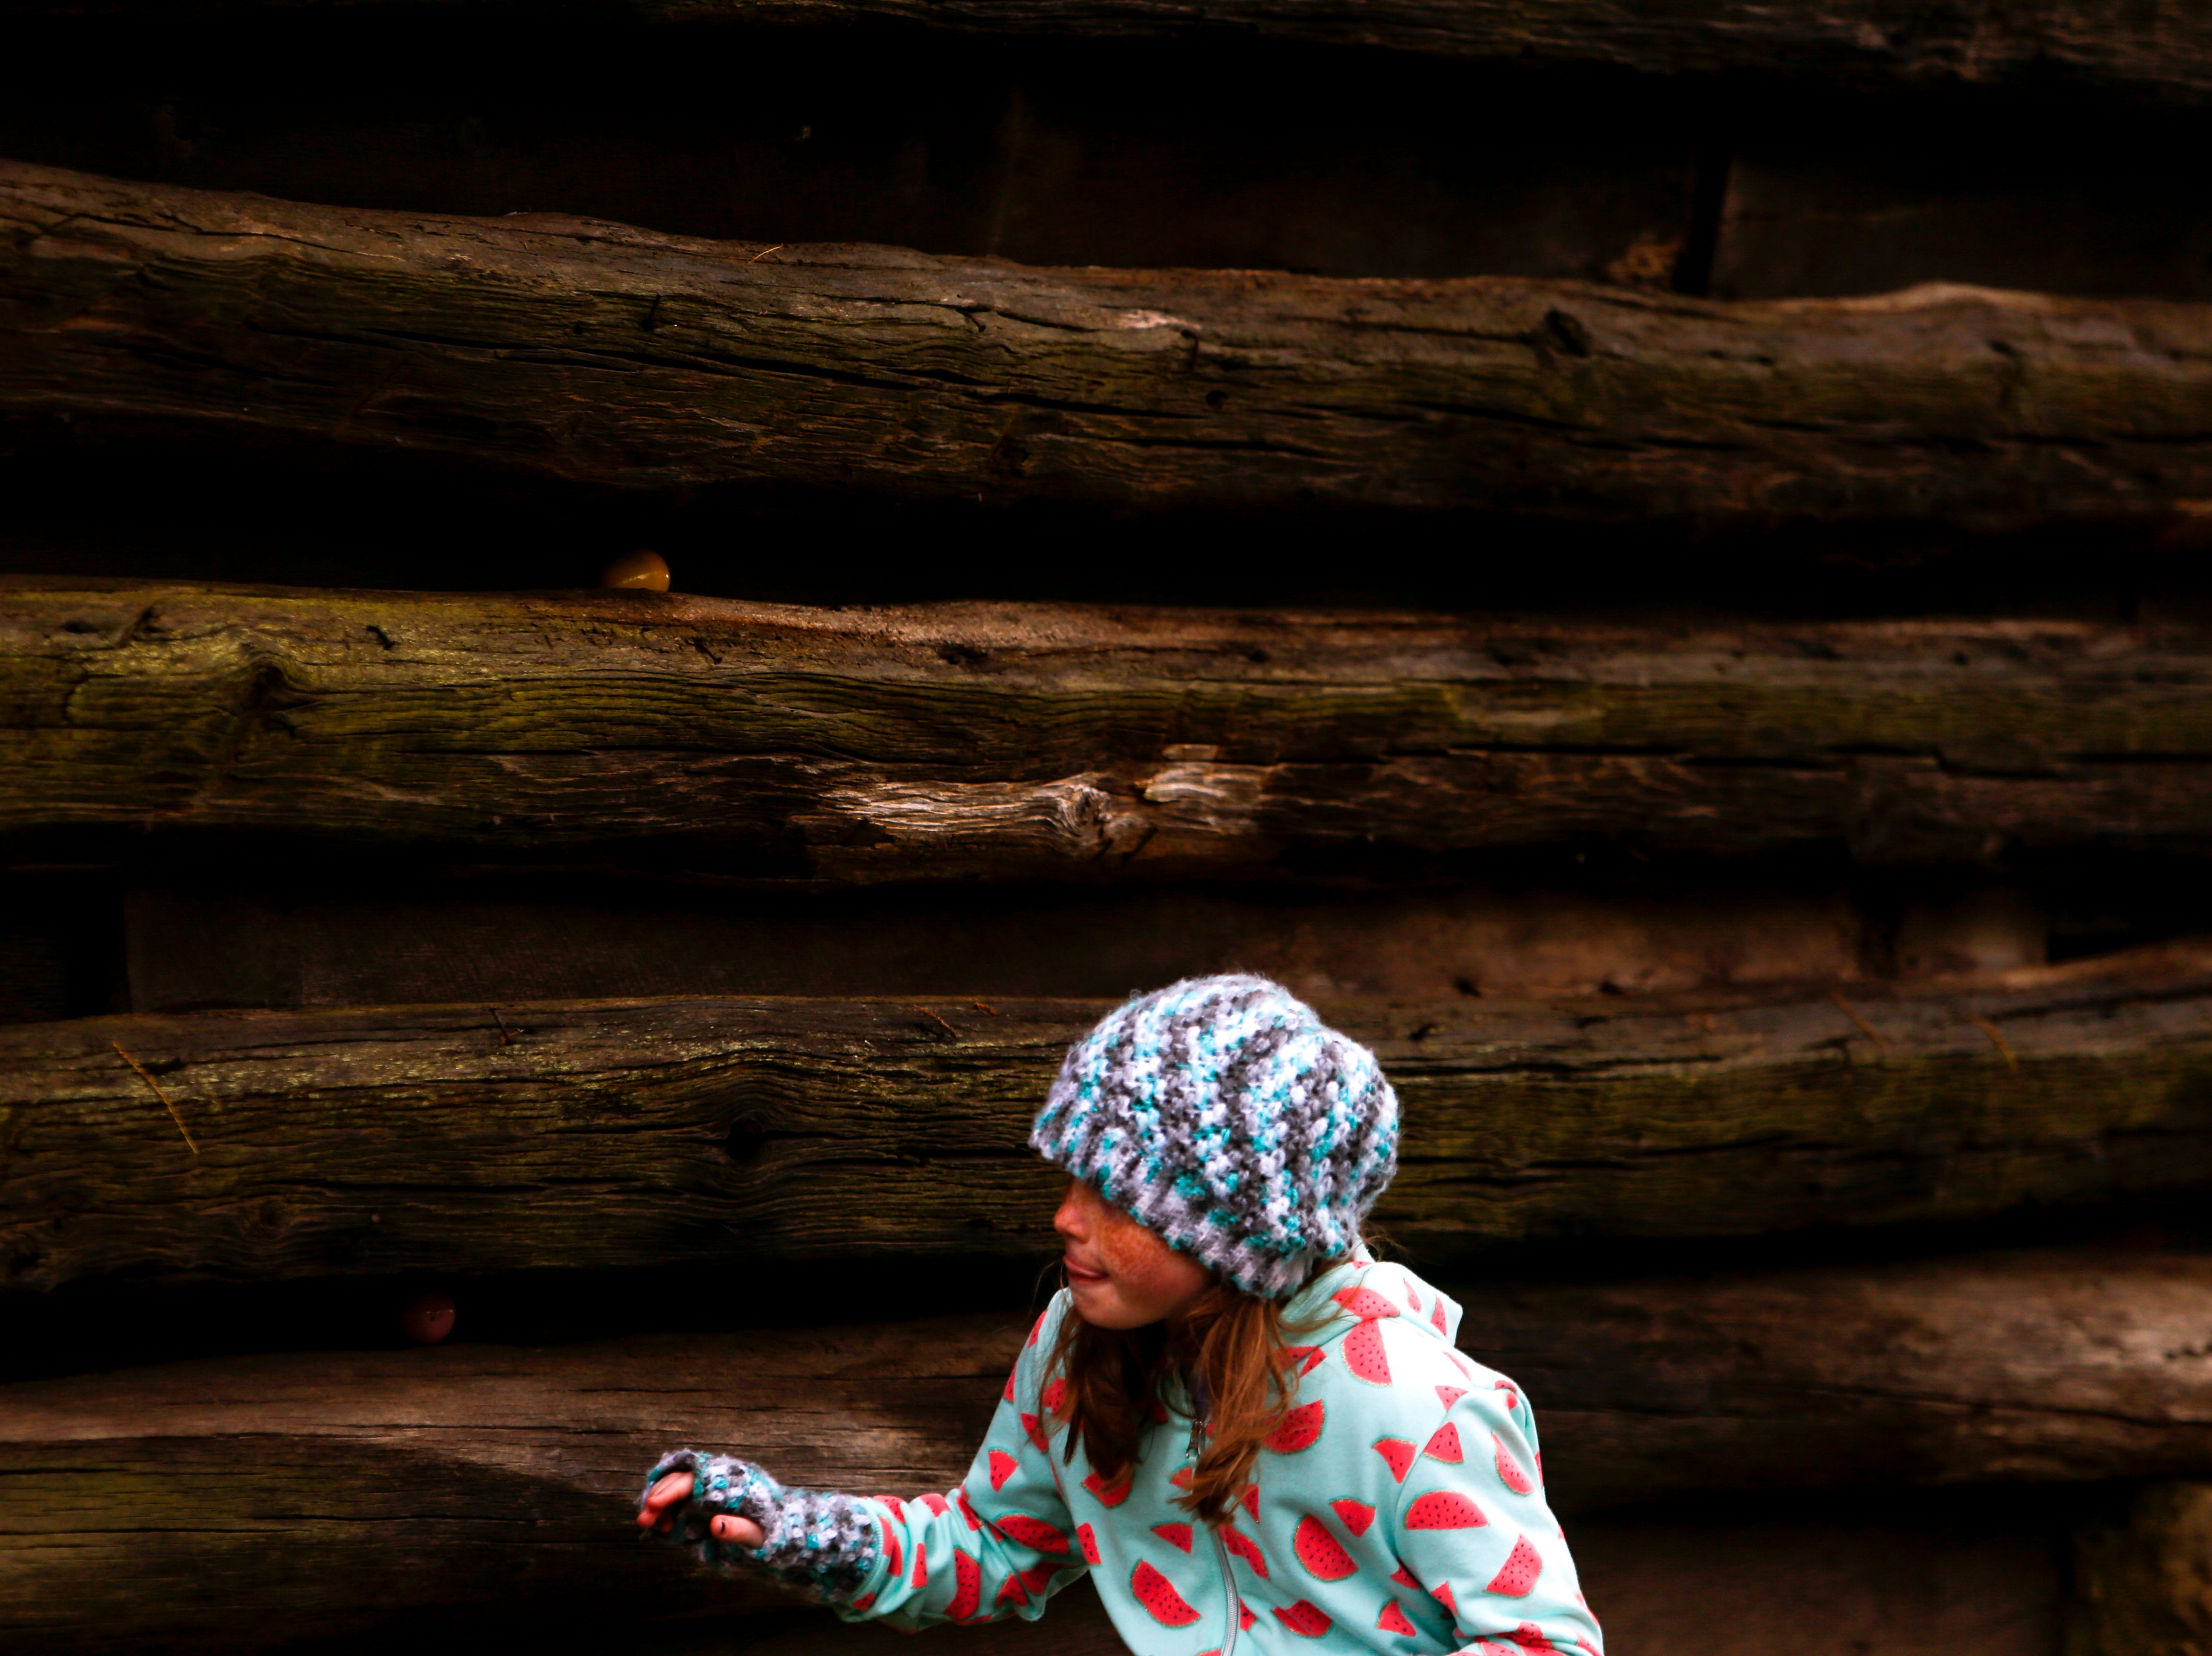 An egg hunter sneaks around the walls of a tobacco barn at the annual Easter egg hunts at Historic Collinsville in Clarksville, Tenn., on Saturday, April 20, 2019.